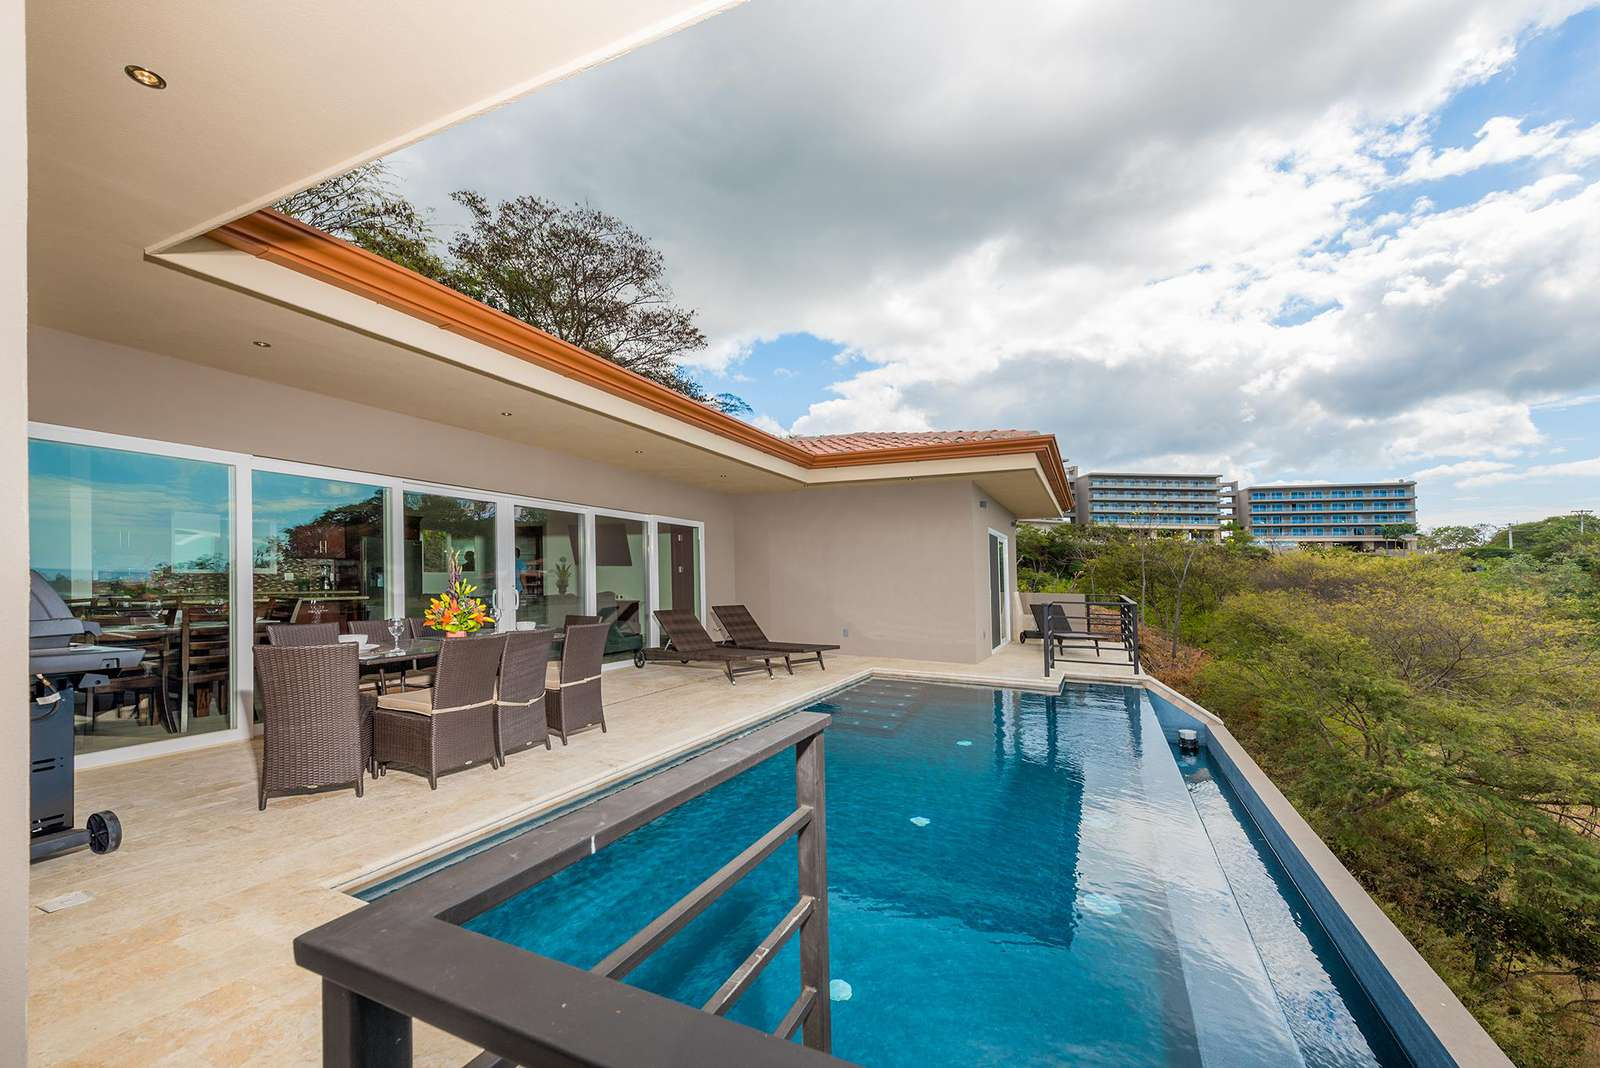 View of pool, terrace area